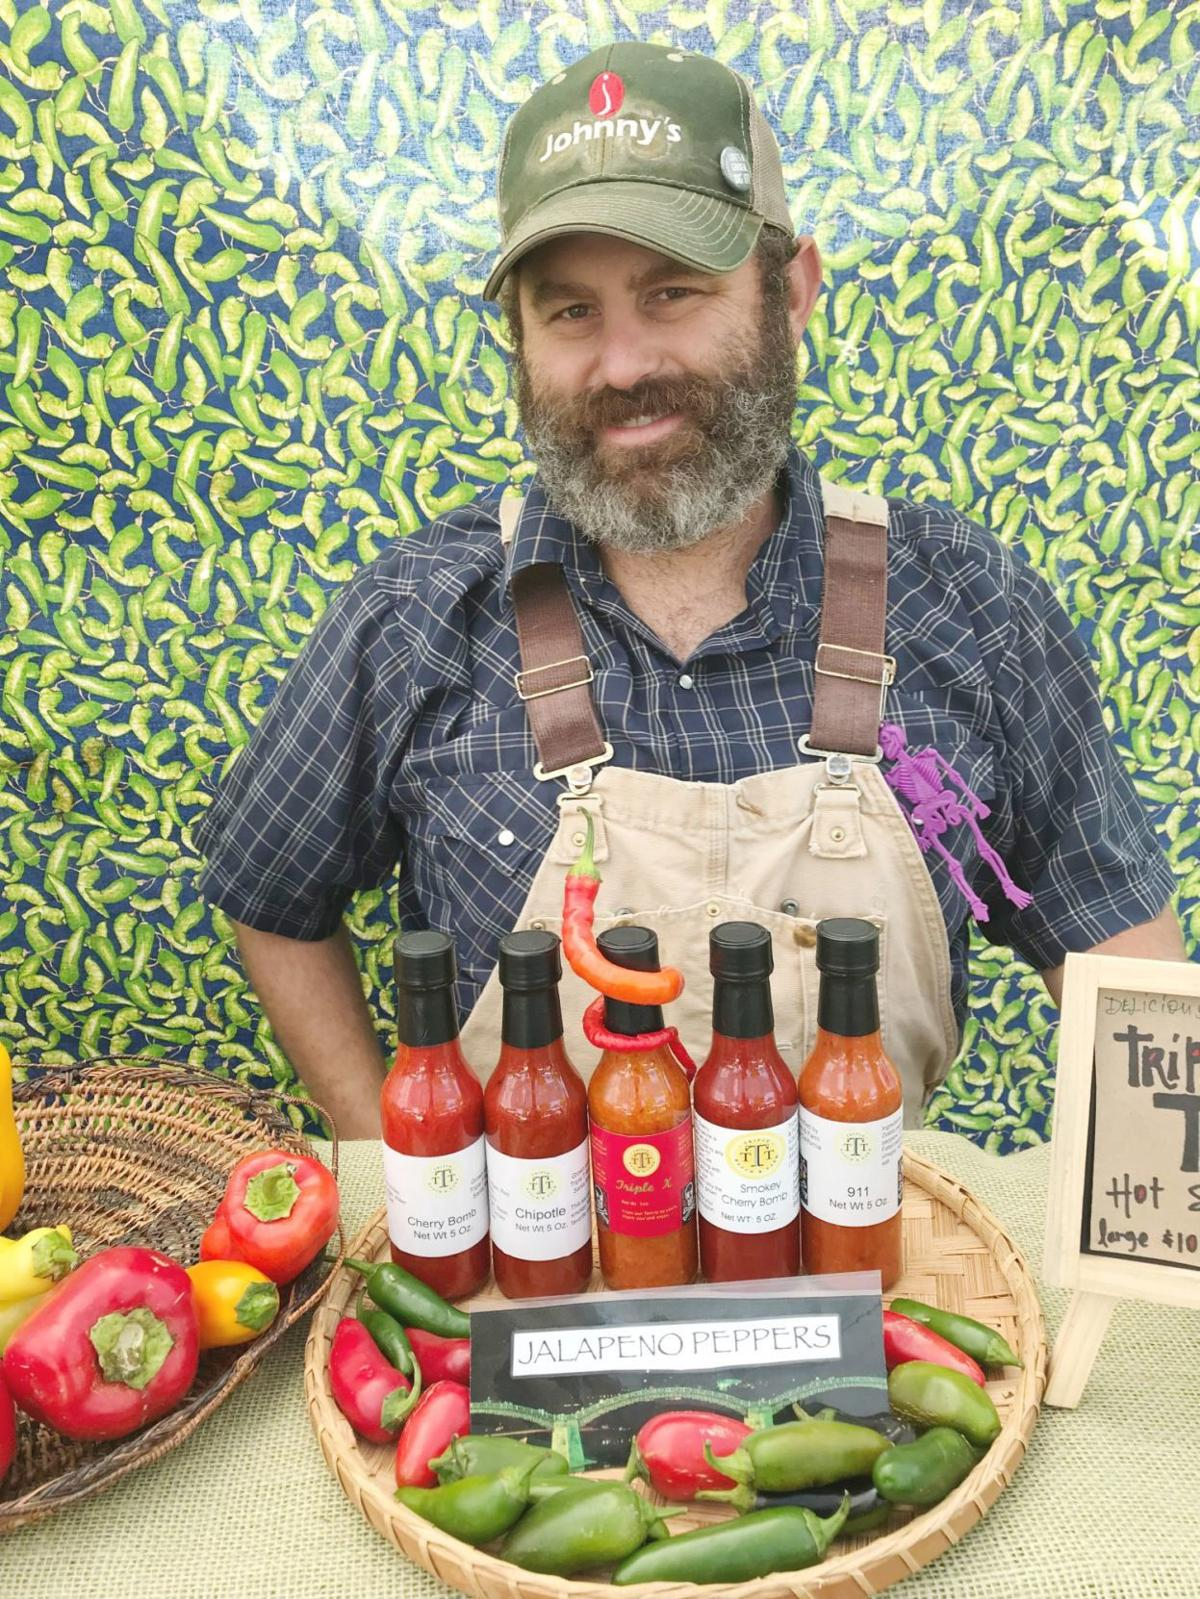 Vince Tristano of Santa Rosa's Triple T Ranch and Farm